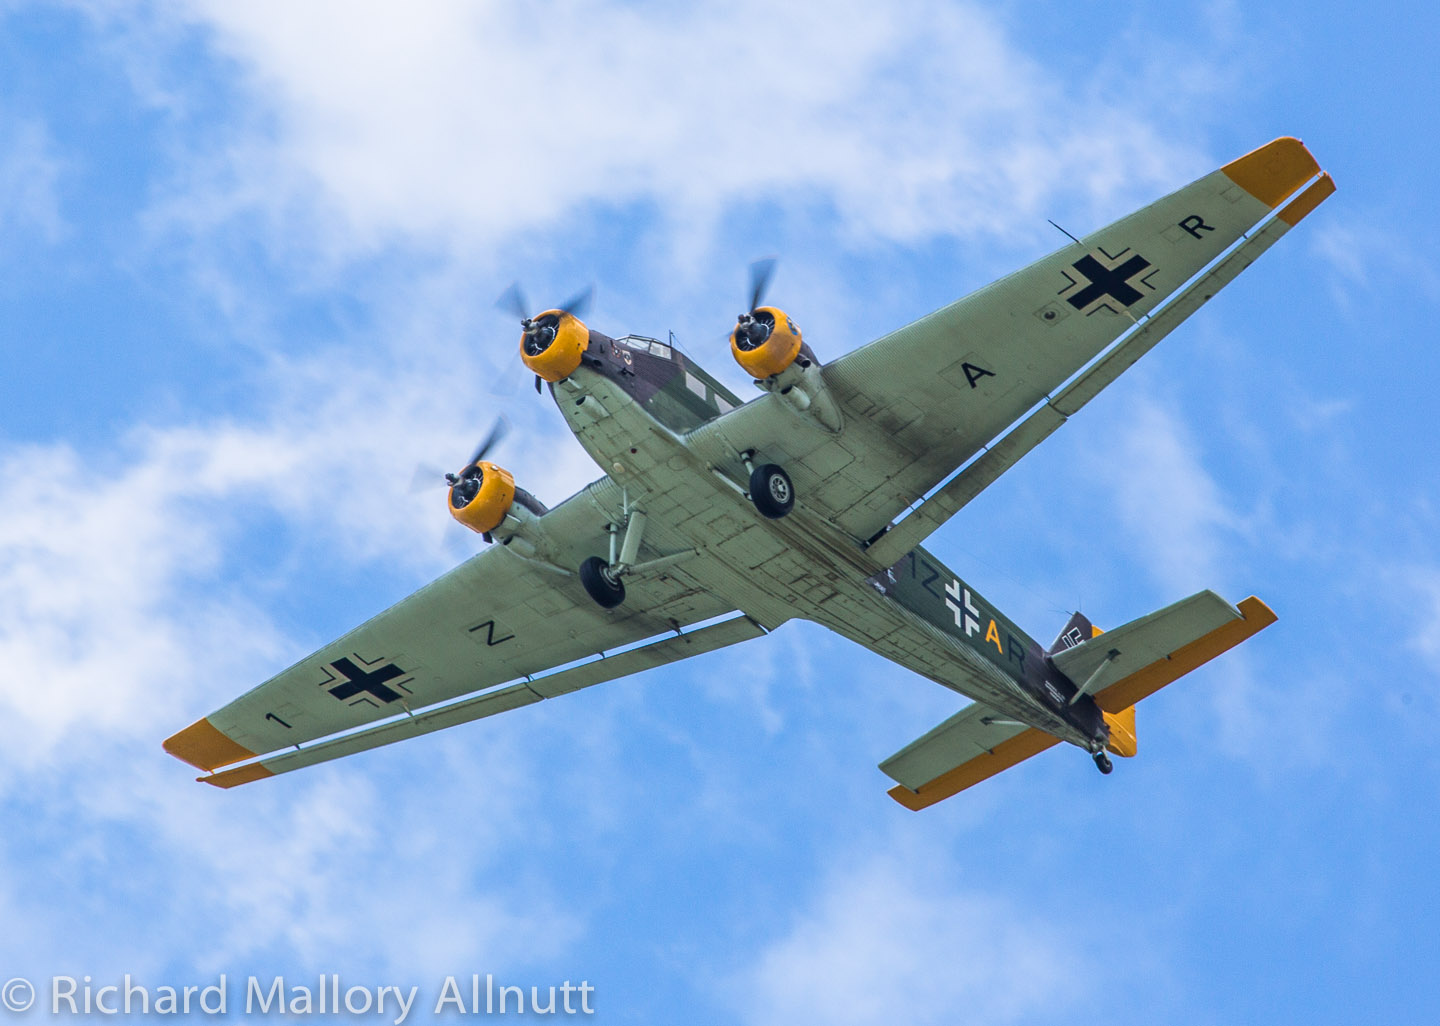 _C8A0239 - Richard Mallory Allnutt photo - Warbirds Over the Beach - Military Aviation Museum - Pungo, VA - May 17, 2014